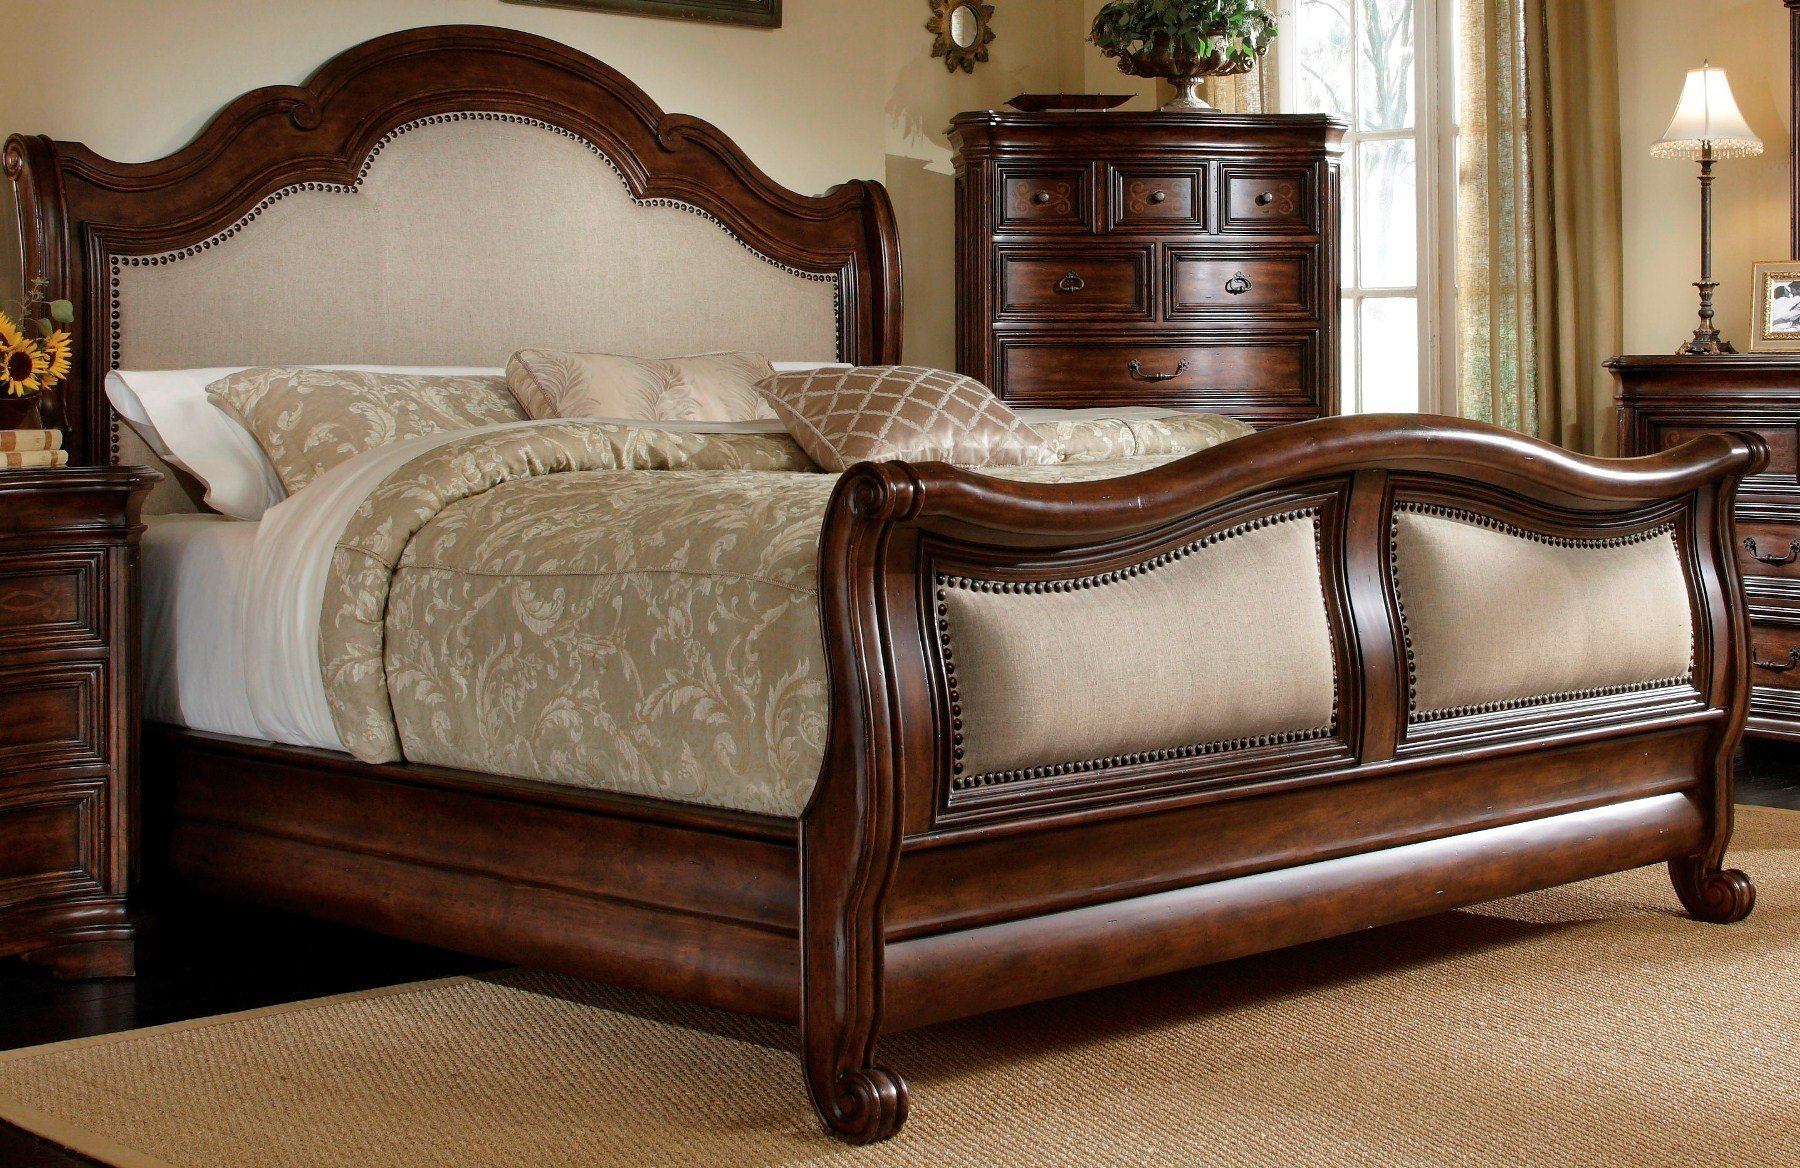 Best Coronado Sleigh Bedroom Set From Art Furniture 172145 With Pictures